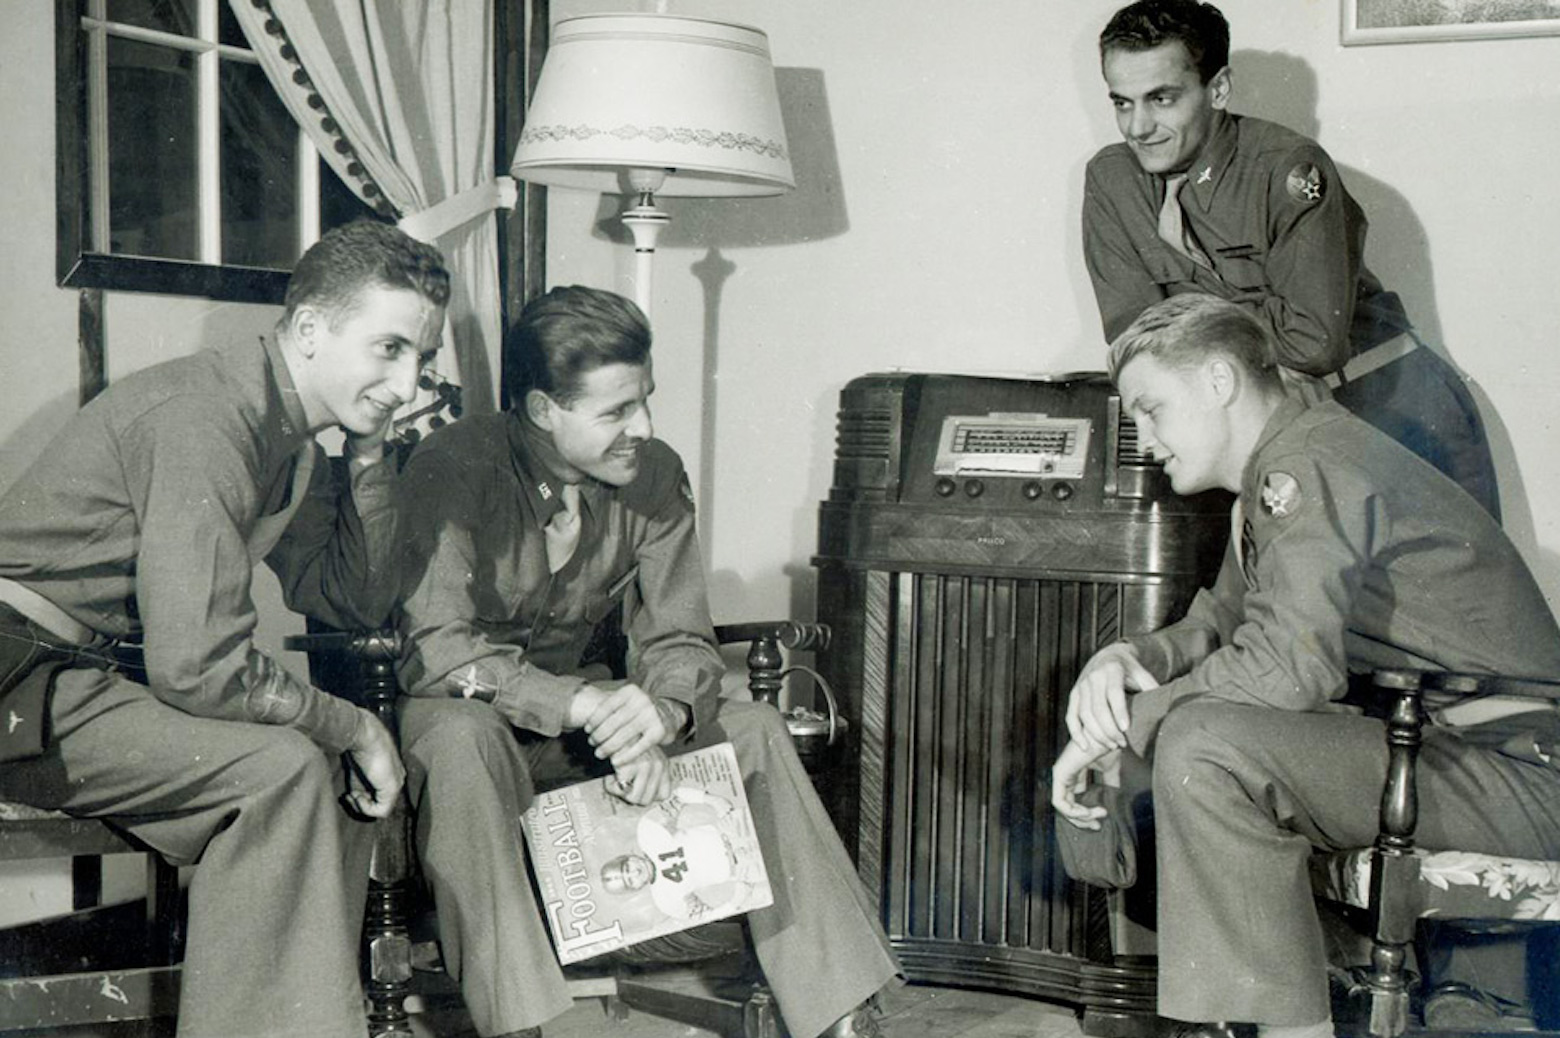 group of soldiers sitting around radio listening to Michigan football game